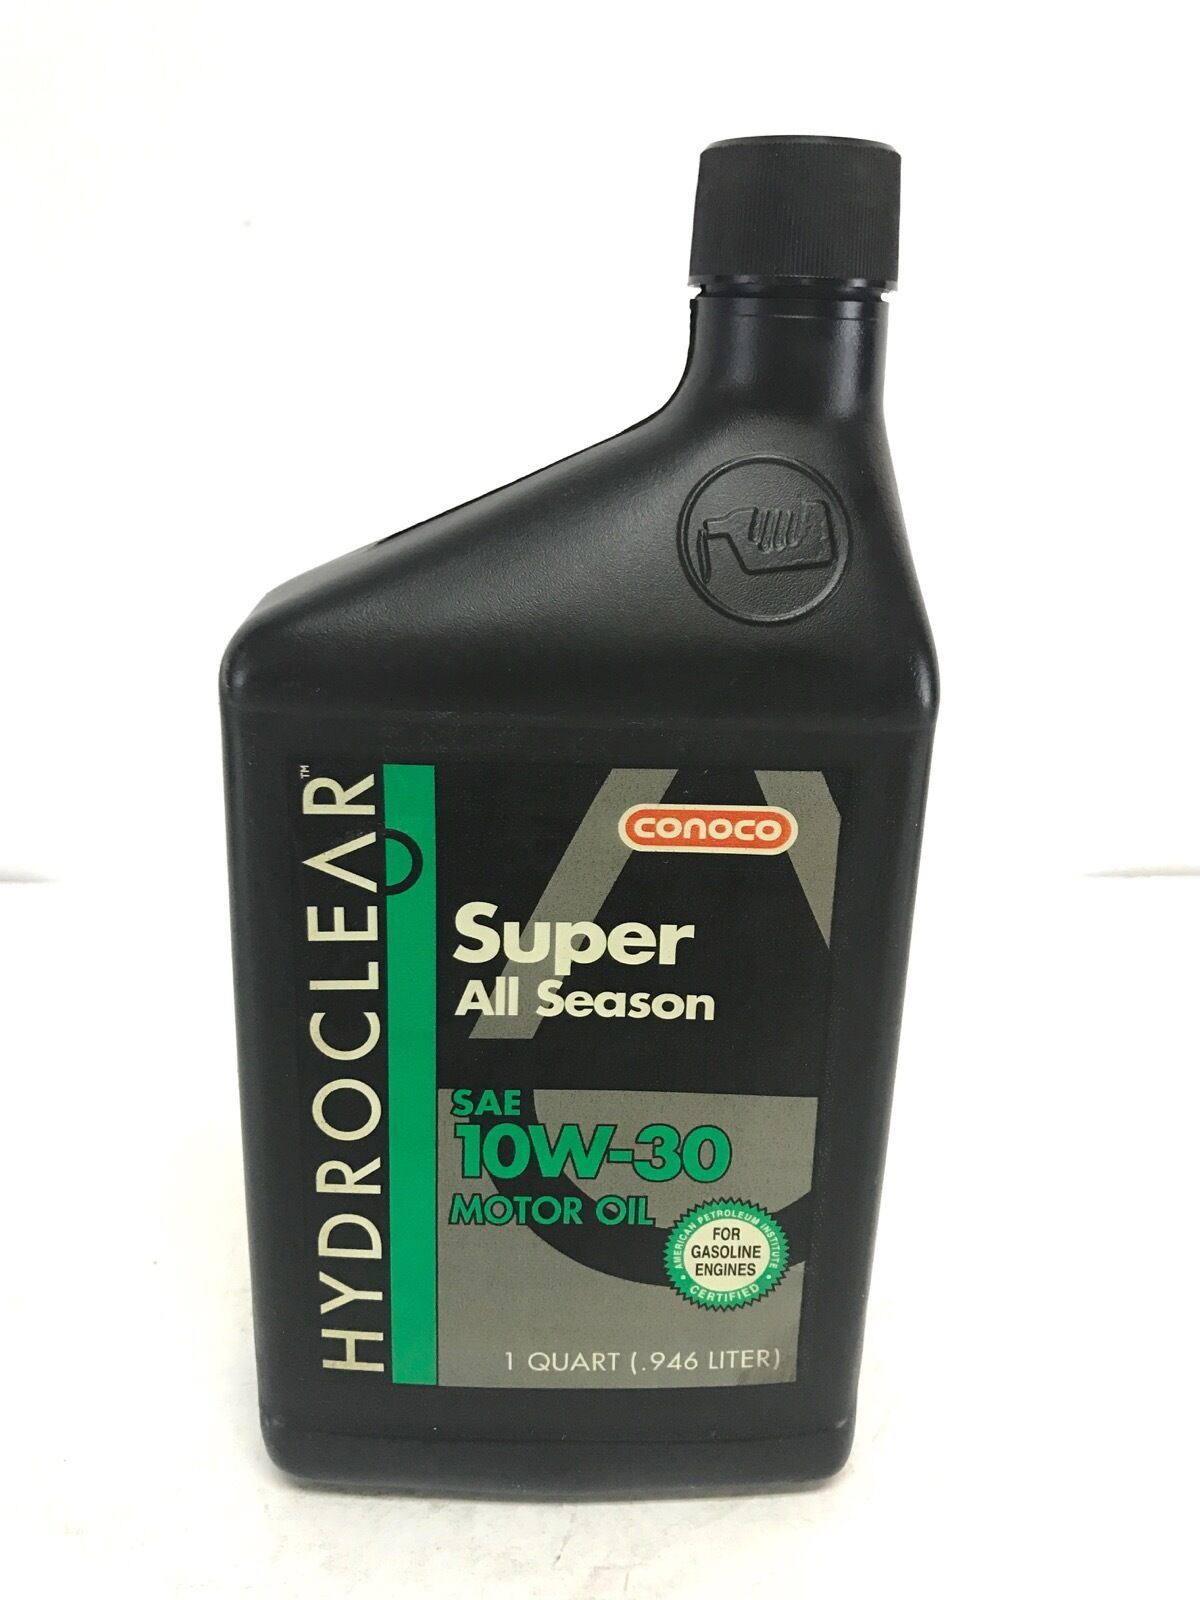 Conoco Super All Season Motor Oil Sae 10w 30 Hydroclear 1